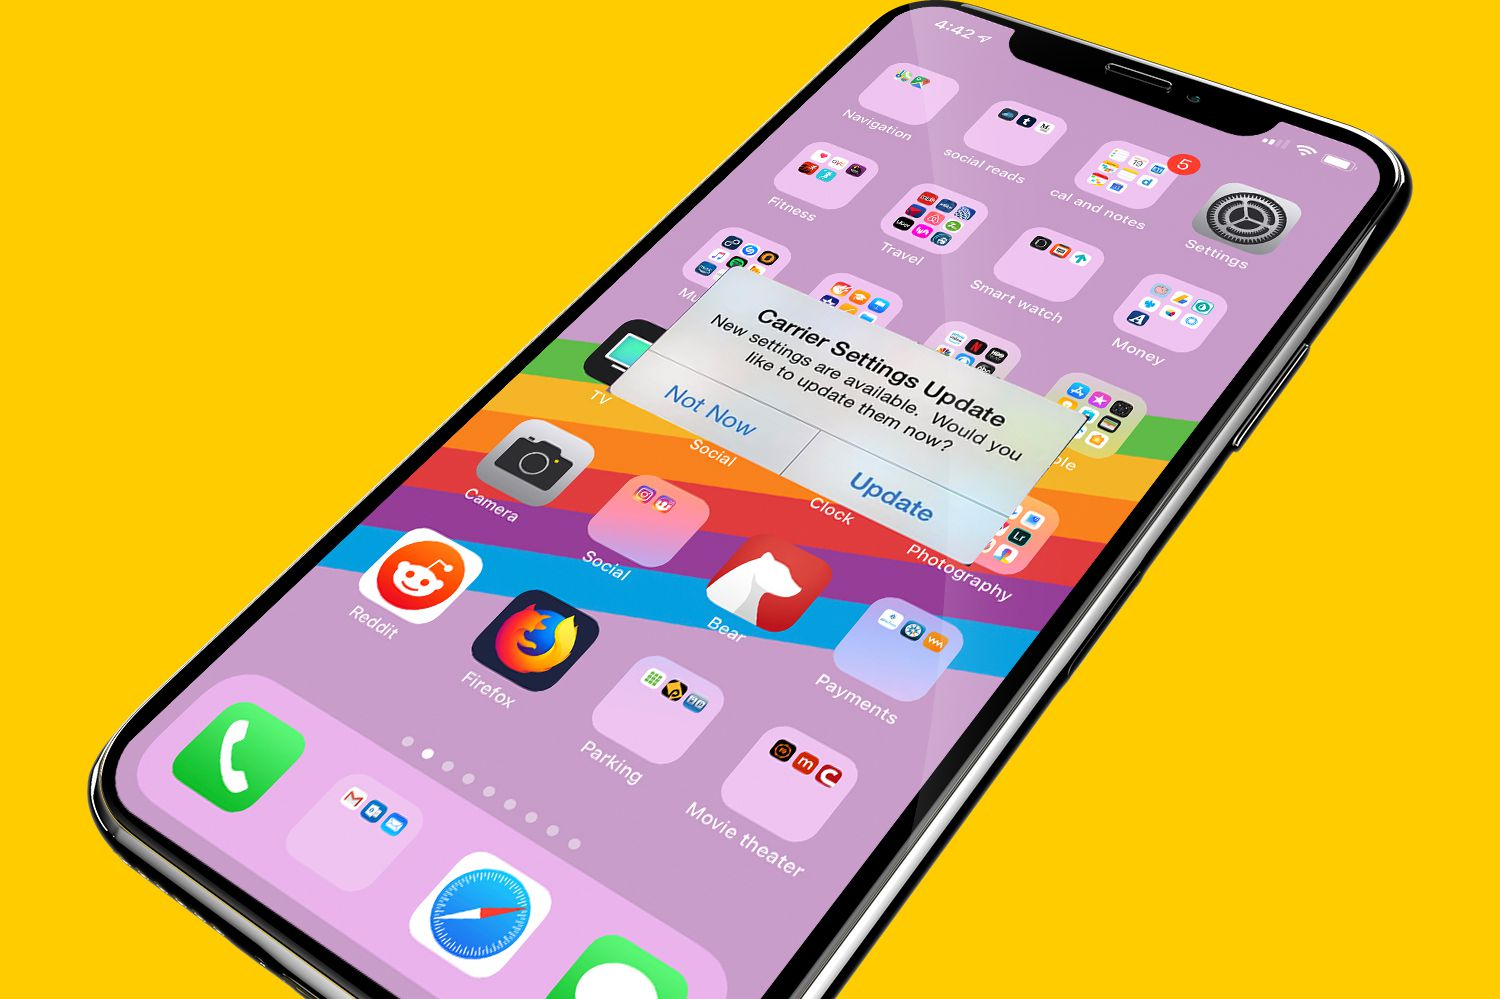 Update your carrier settings on your iPhone or iPad